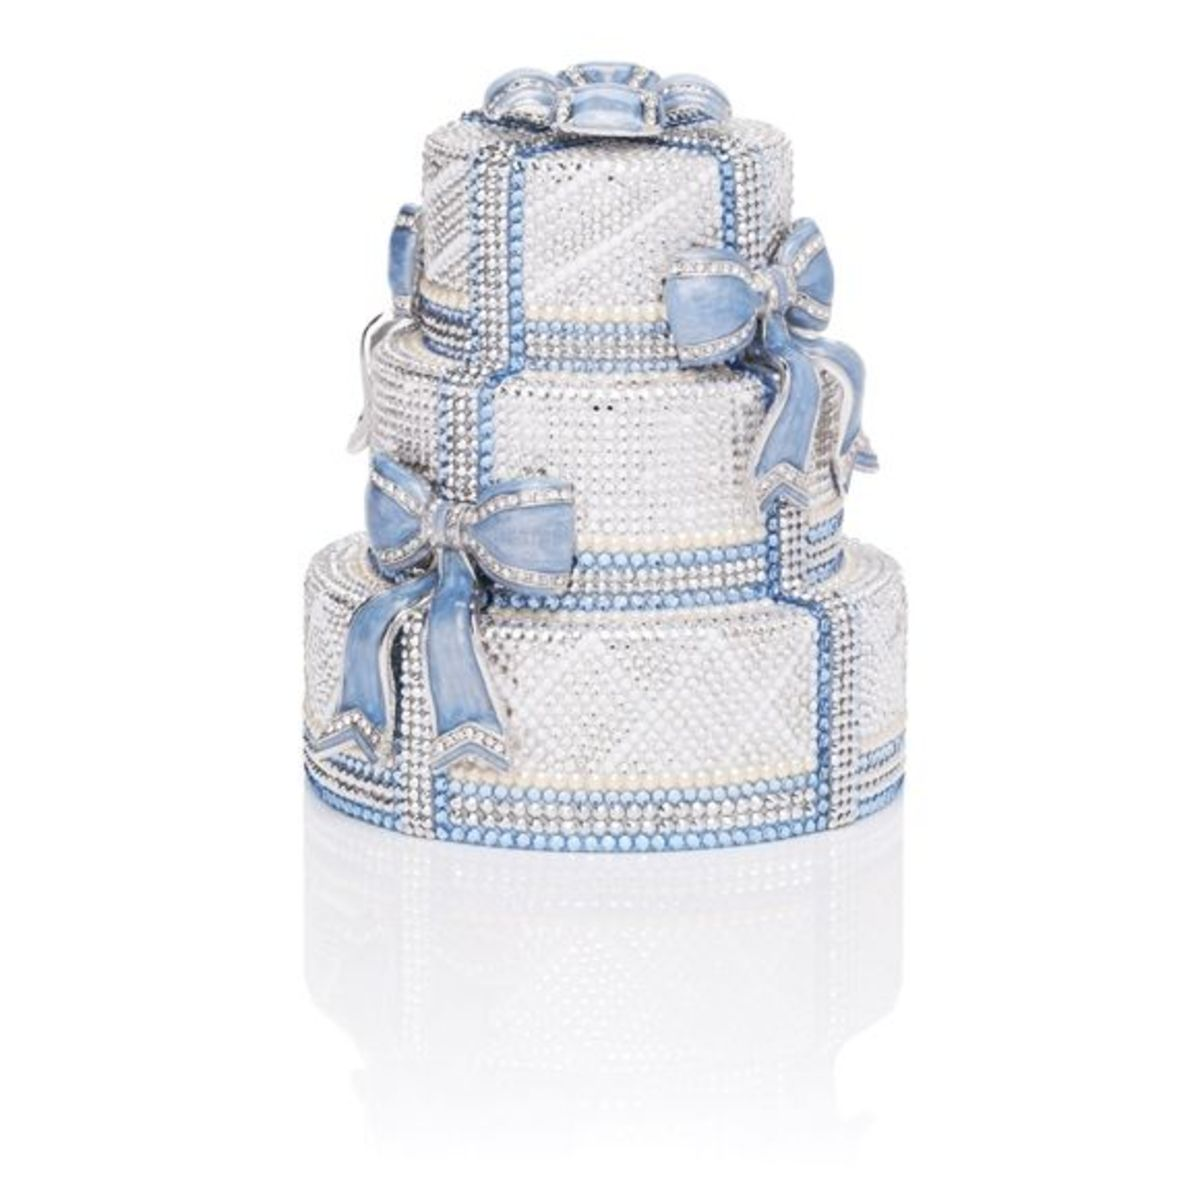 """BLUE BOWSPrice: $6,995Limited edition, triple tiered wedding cake minaudière with enamel bow accents, top snap closure and 19"""" chain. Perfect bag for your bedding day!"""